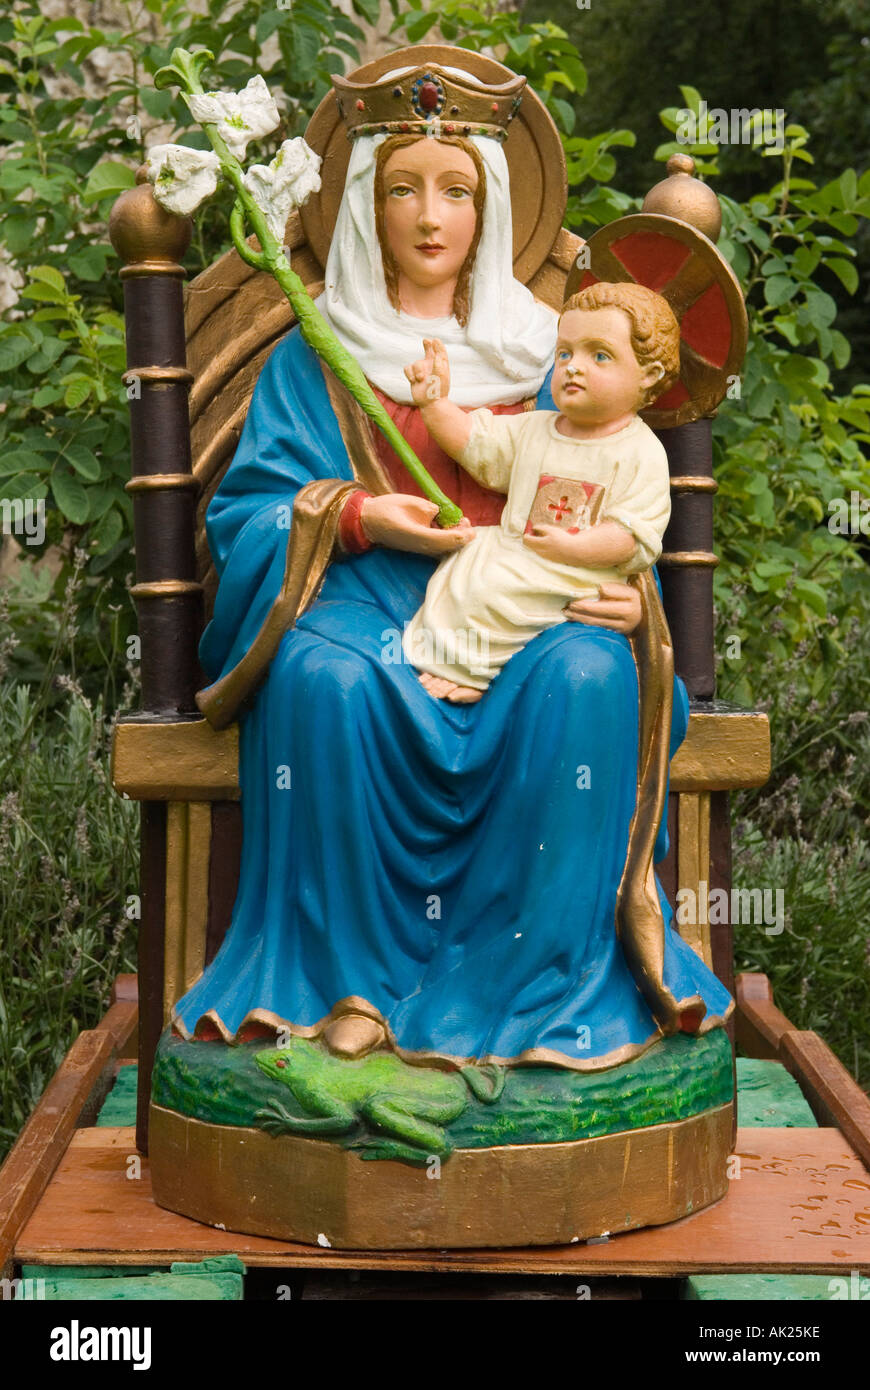 Walsingham Pilgrimage. A statue of Our lady of Walsingham Little Walsingham North Norfolk England HOMER SYKES - Stock Image